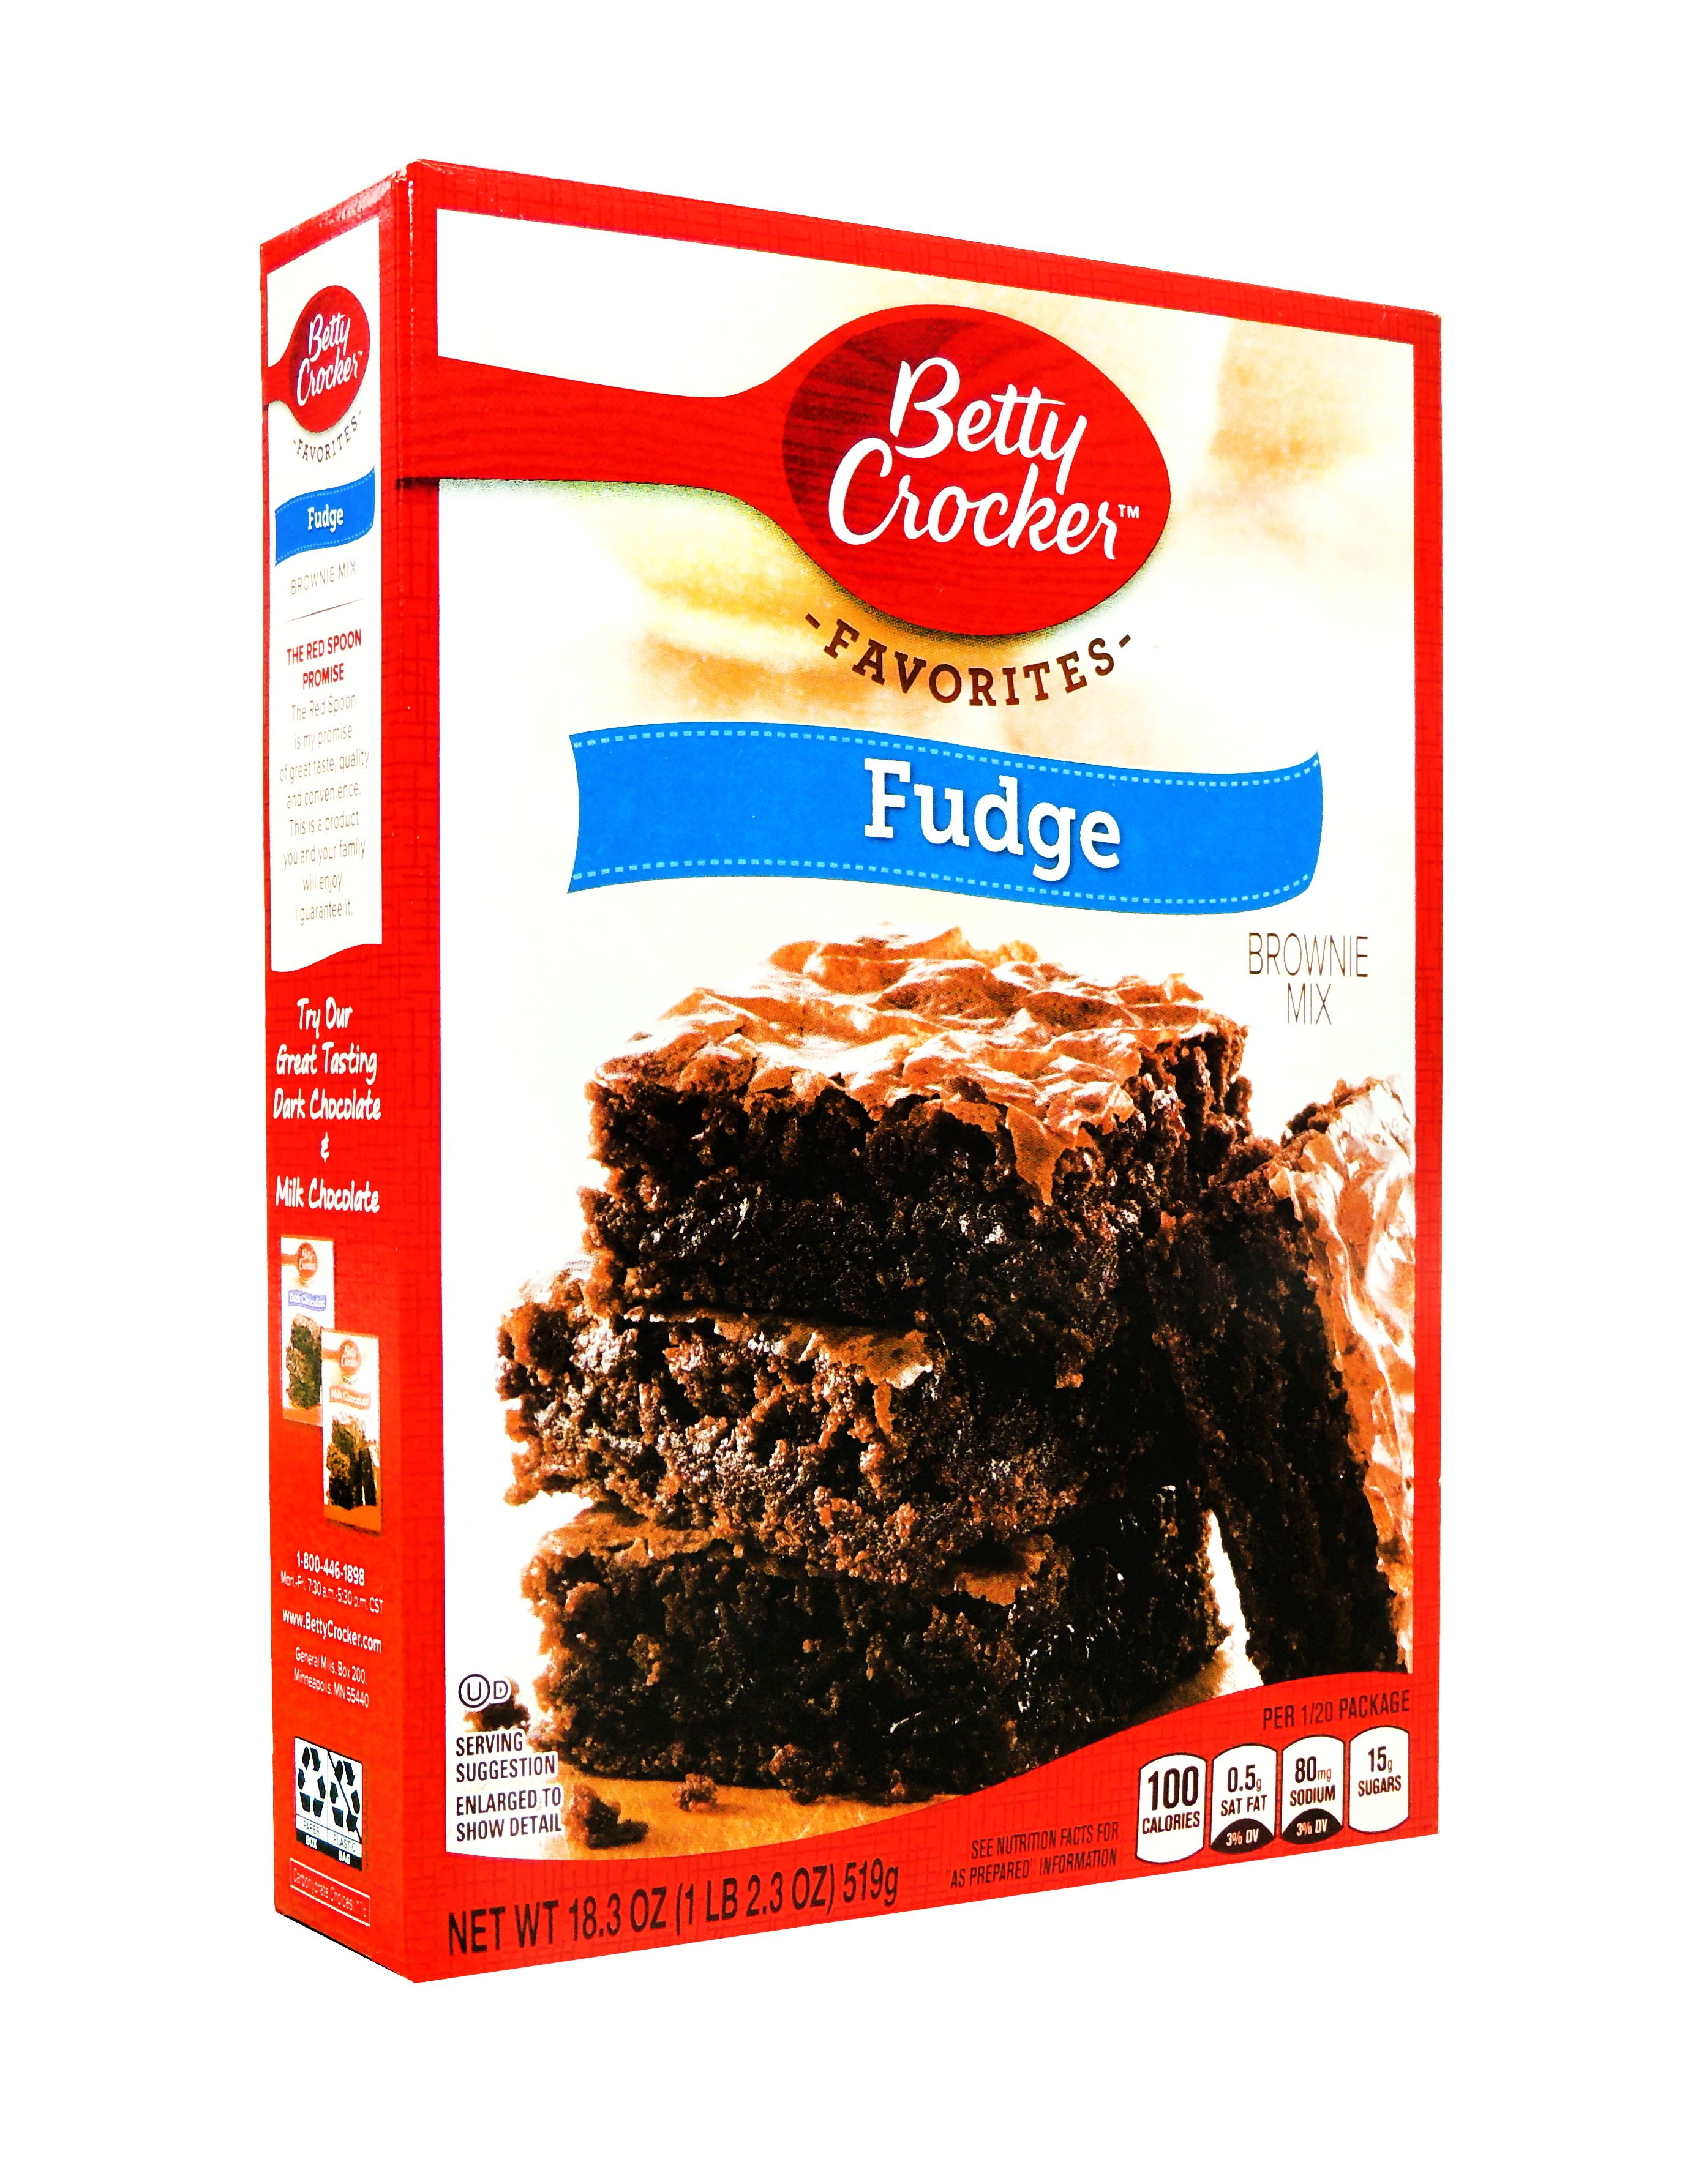 Bty Crok Brwni Mix 18.3Oz Fudge 1 count only by Betty